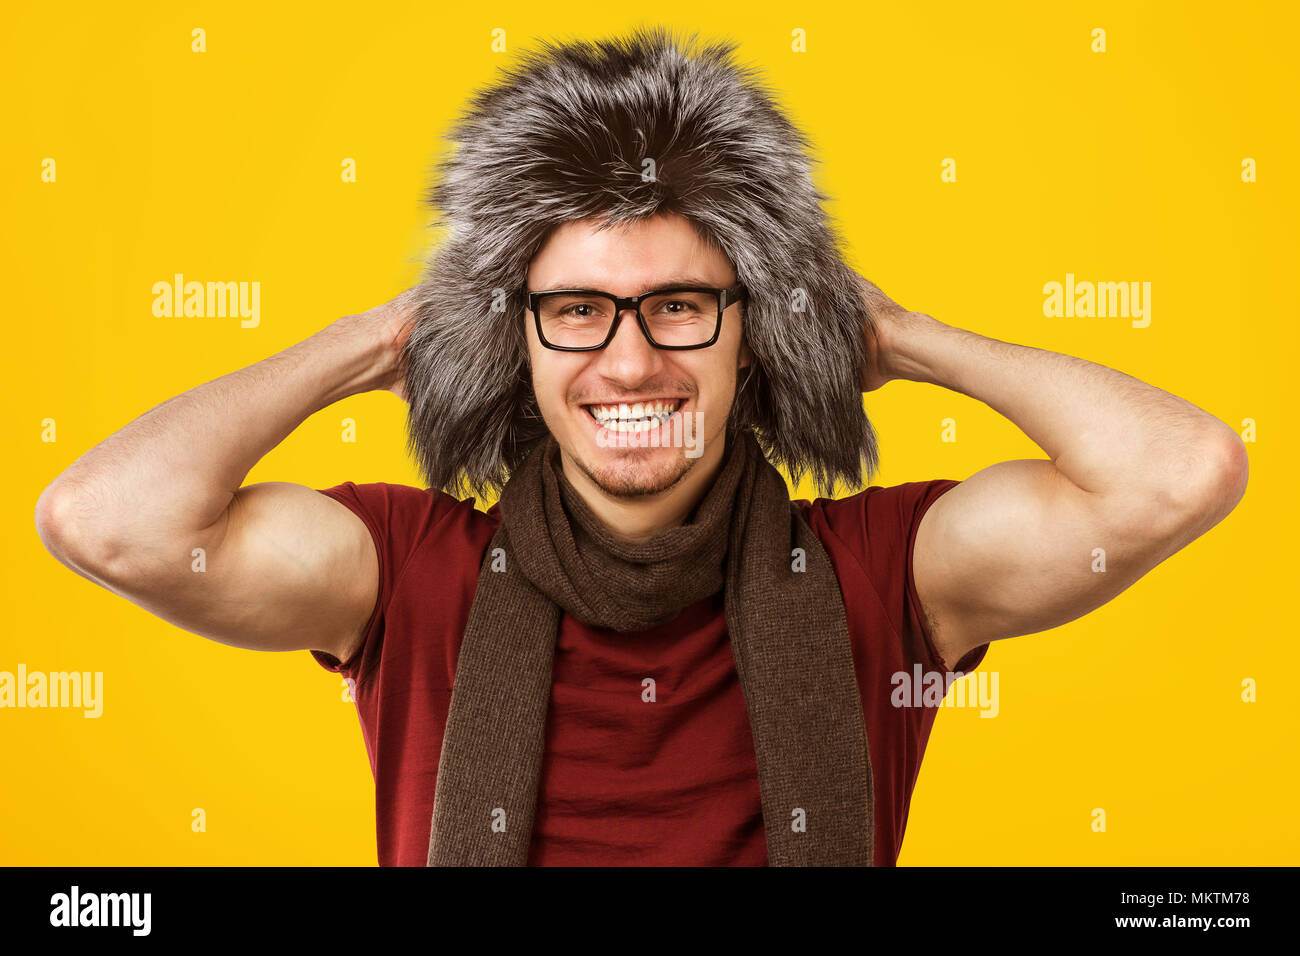 Cheerful handsome man wearing stylish furry hat and eyeglasses smiling at camera on yellow background. Stock Photo